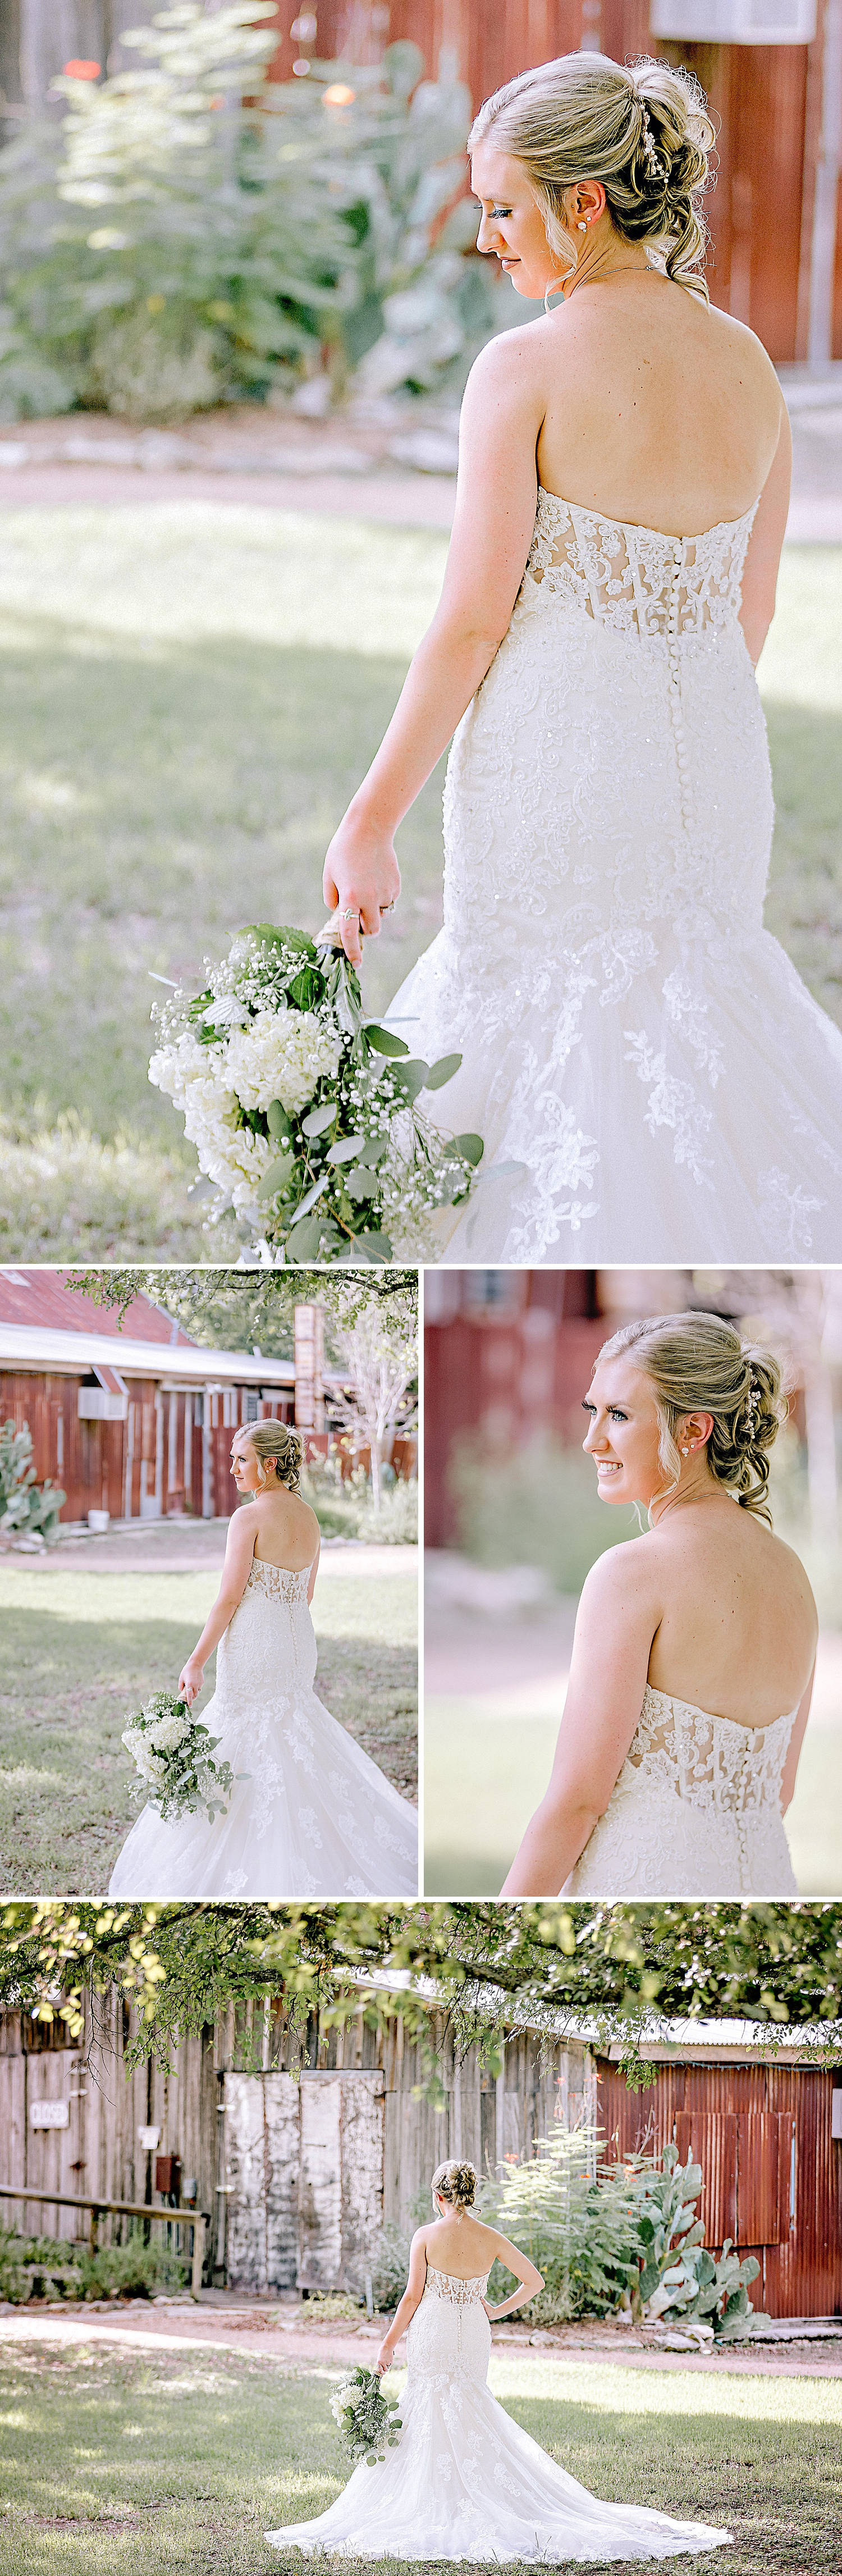 Carly-Barton-Photography-Bridal-Photos-Gruene-Rustic-New-Braunfels-Wedding-Photographer_0012.jpg